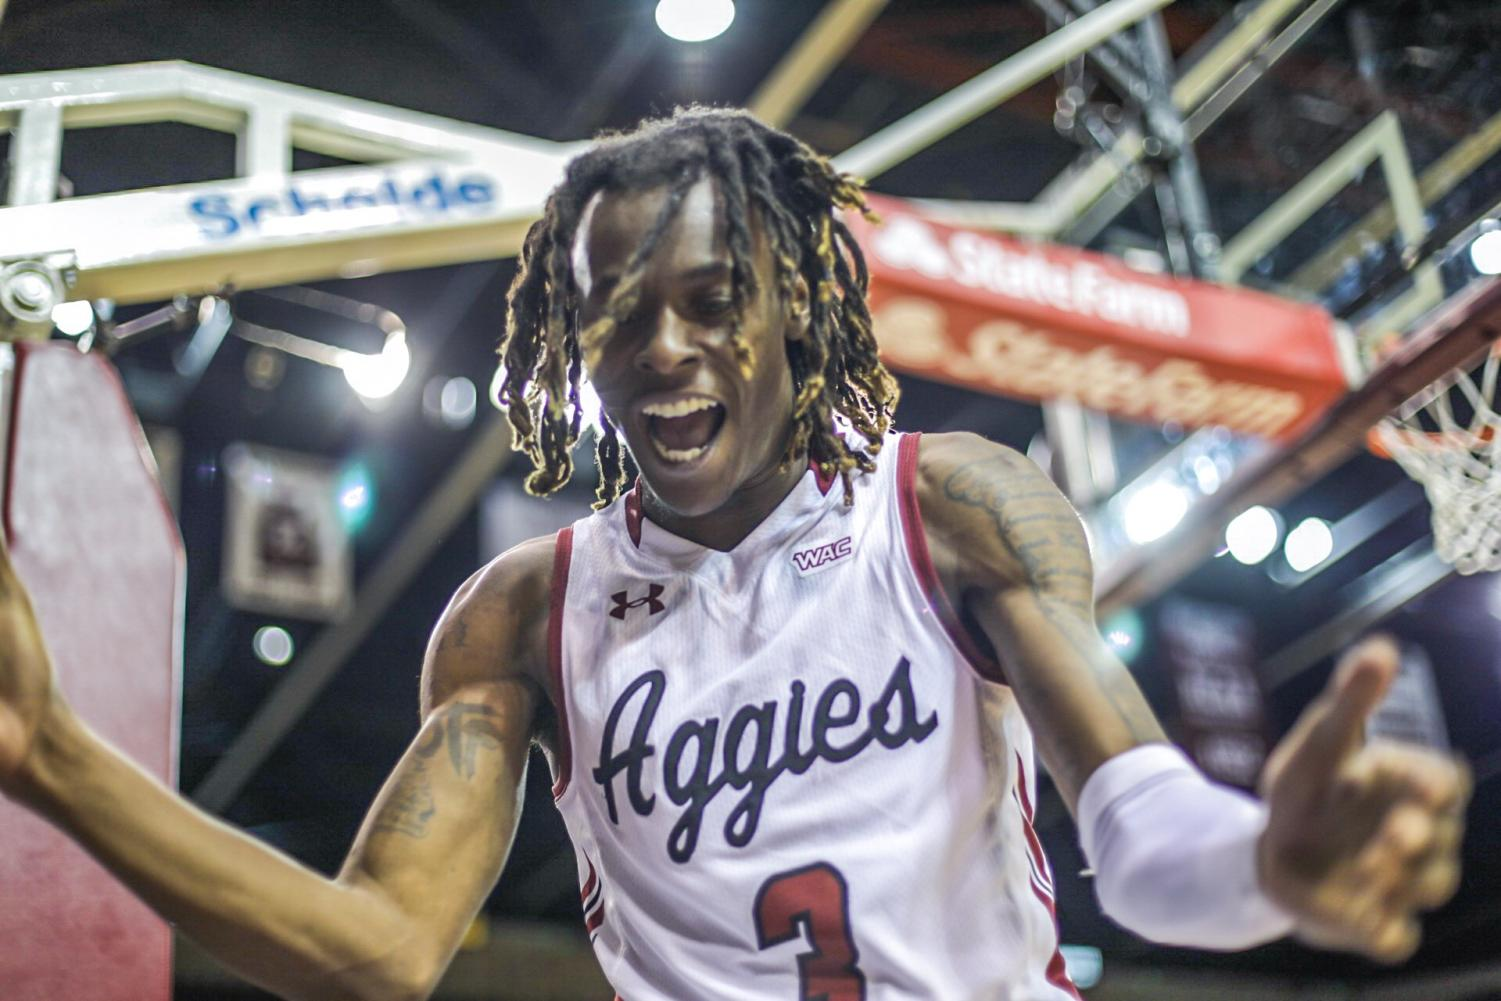 New Mexico State escapes with a 59-53 win over the second-to-last place Seattle Redhawks, positioning themselves one game away from clinching the WAC.